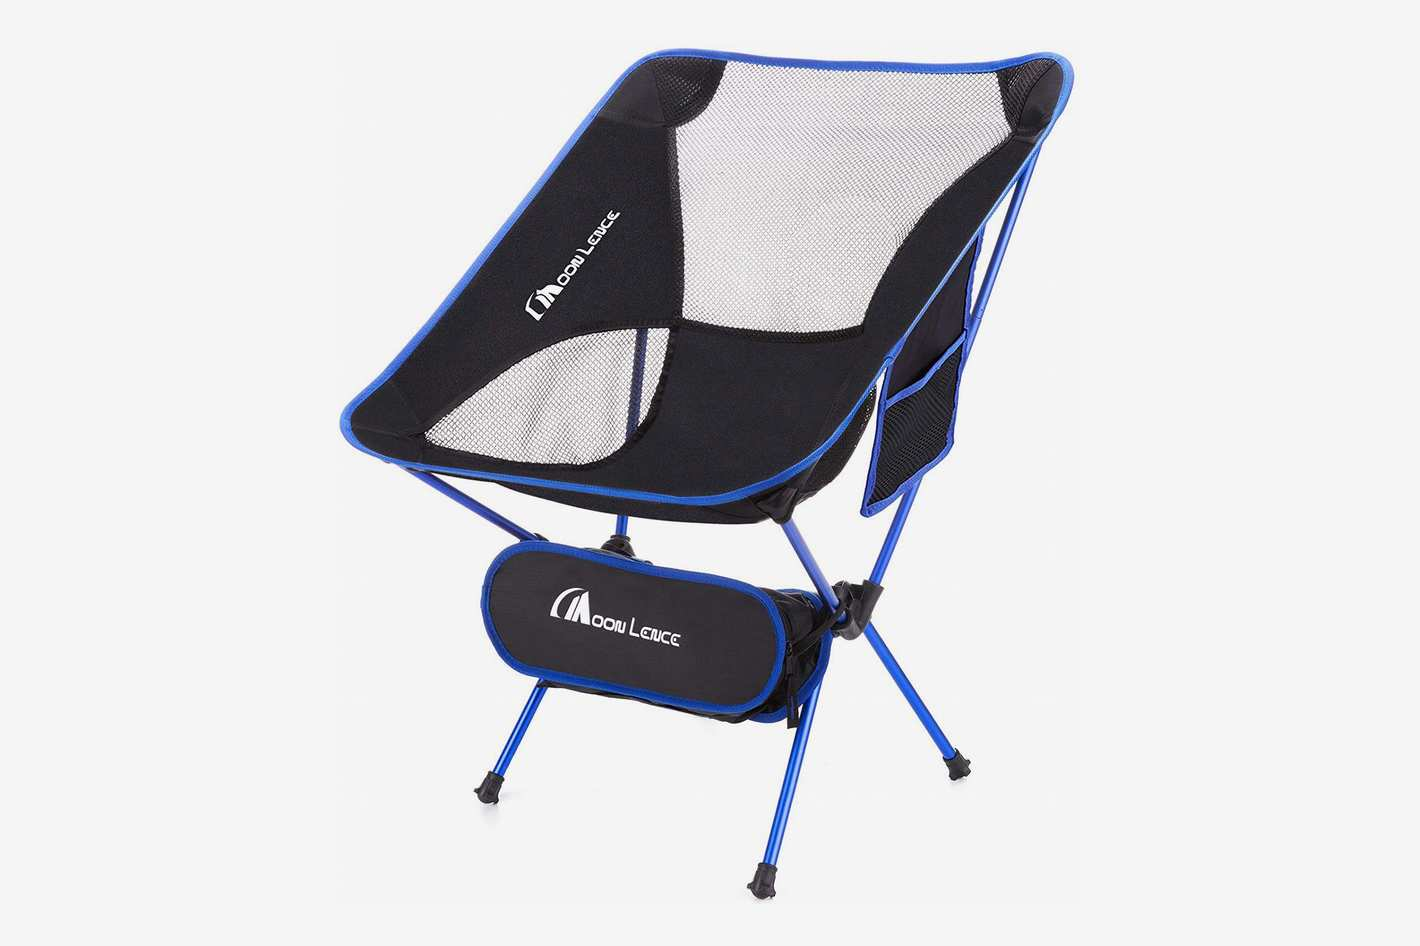 Foldable Lawn Chairs 12 Best Lawn Chairs To Buy 2019